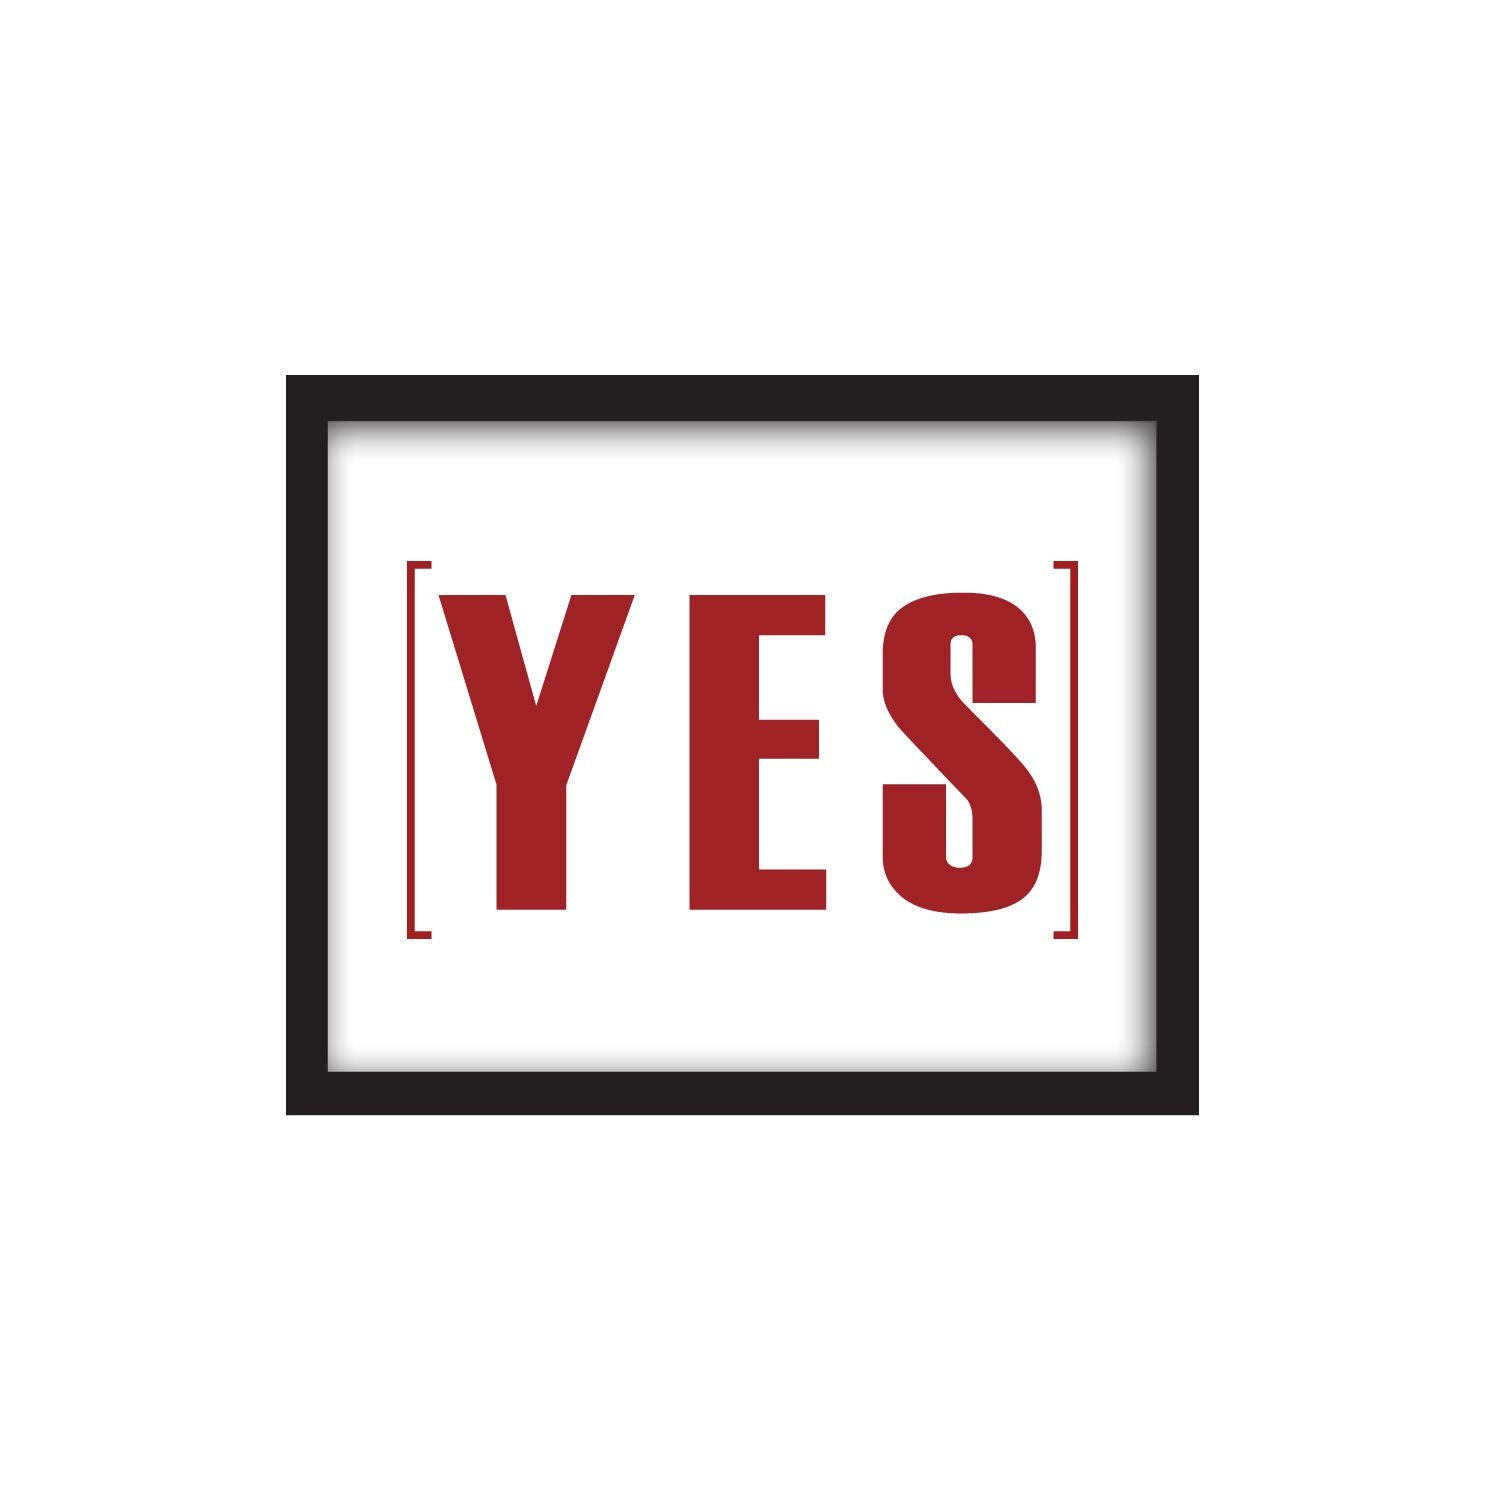 Framed Words – YES - Medium